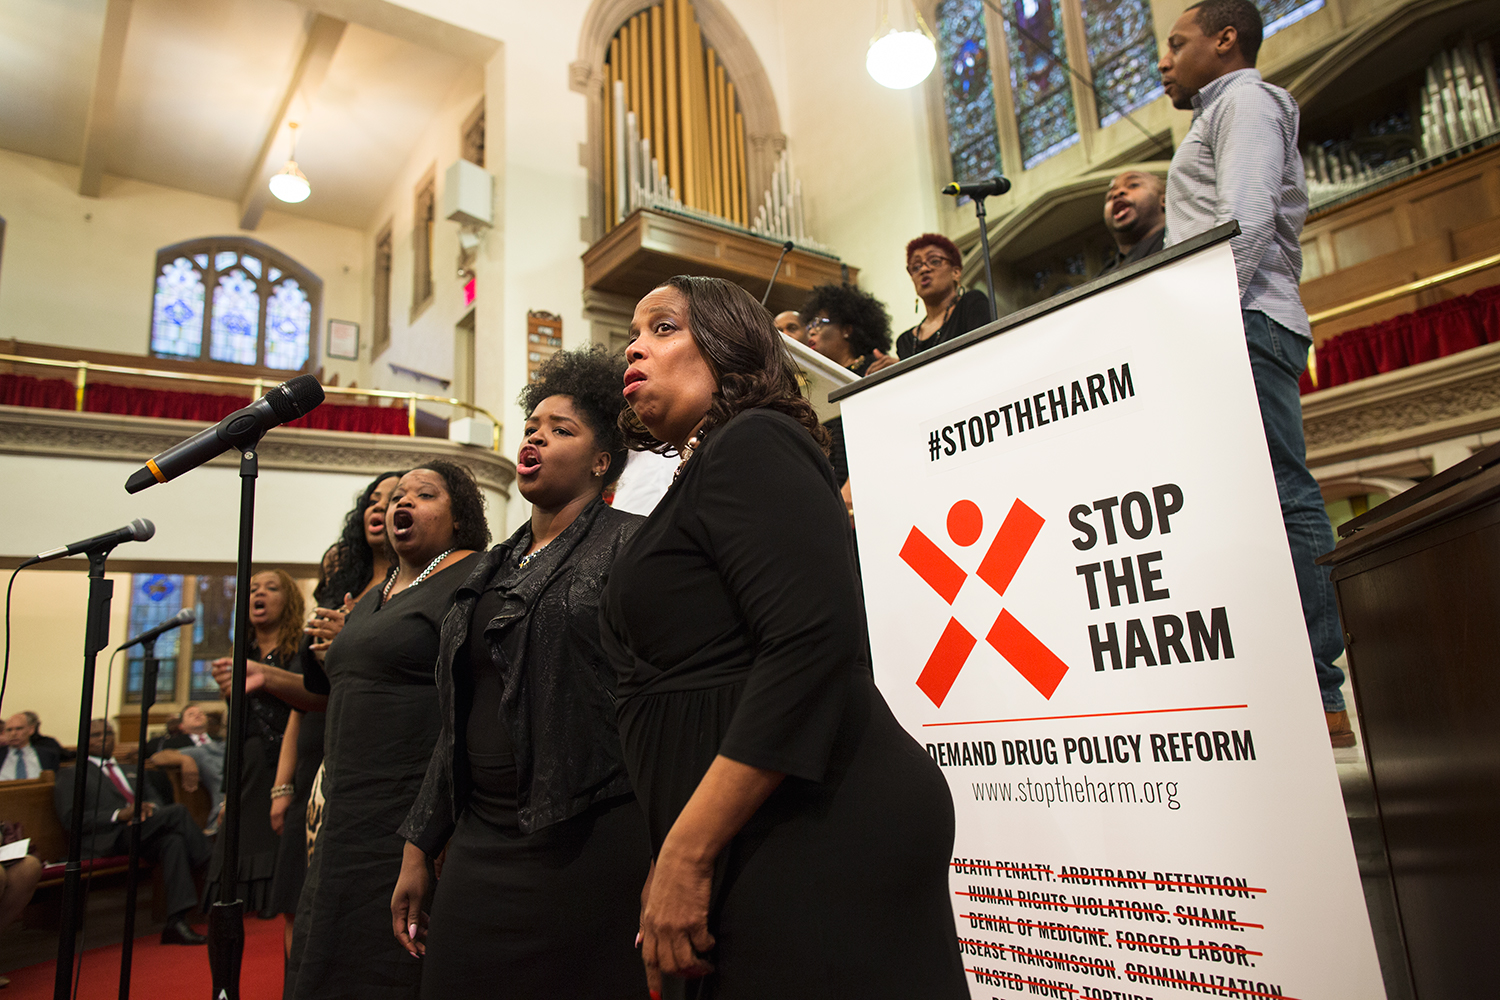 Choir sings during interfaith service at Harlem's historic  Abyssinian Baptist Church  organized by advocacy group  VOCAL-NY  to call for end to the war on drugs on the eve of the United Nations General Assembly Special Session on the world drug problem ( UNGASS ), NY, NY, 2016